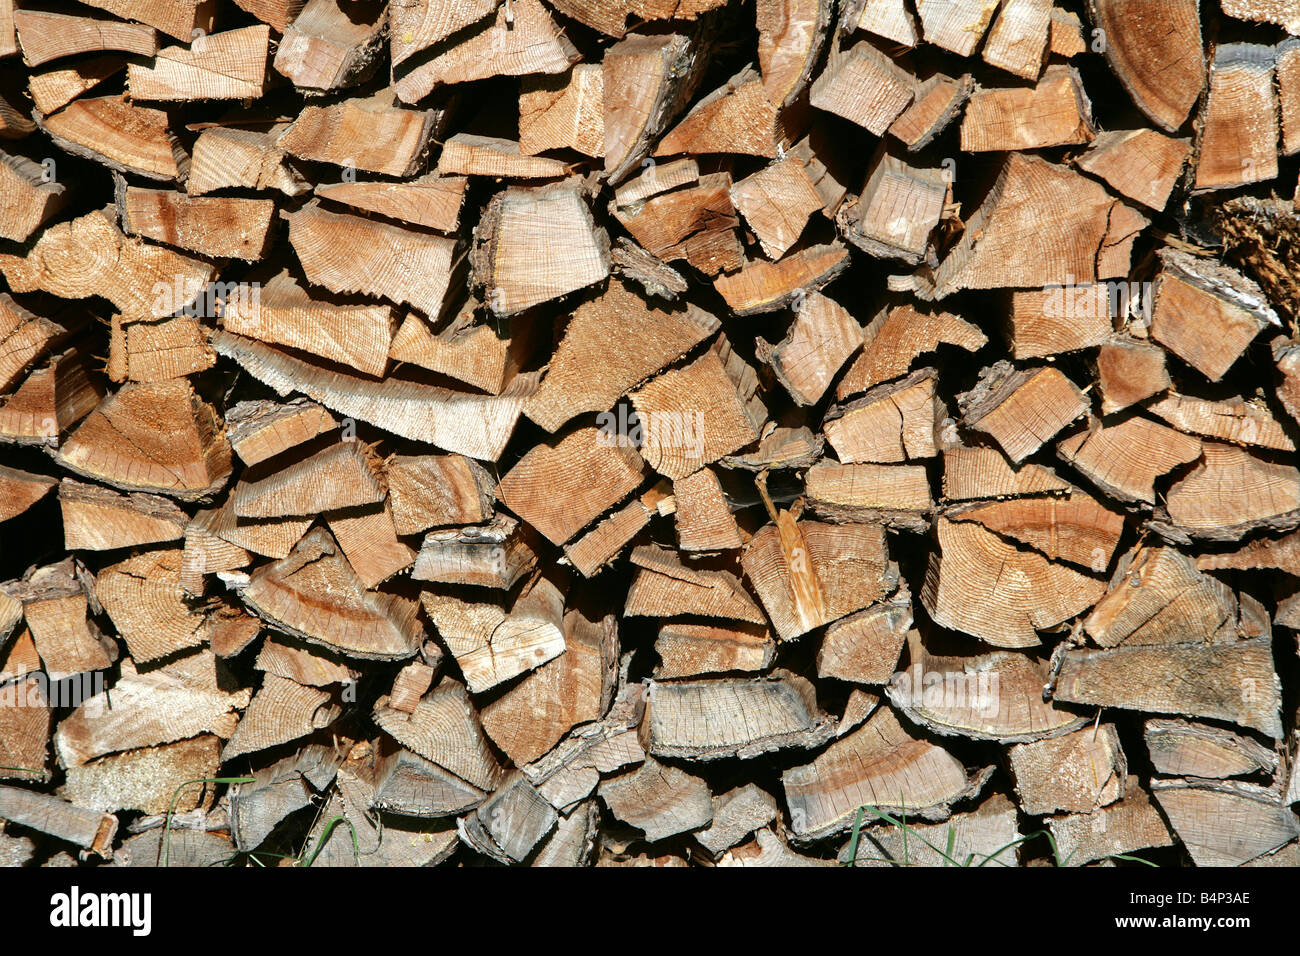 AUT, Austria, Stubai Valley, pile of fire wood, Stock Photo